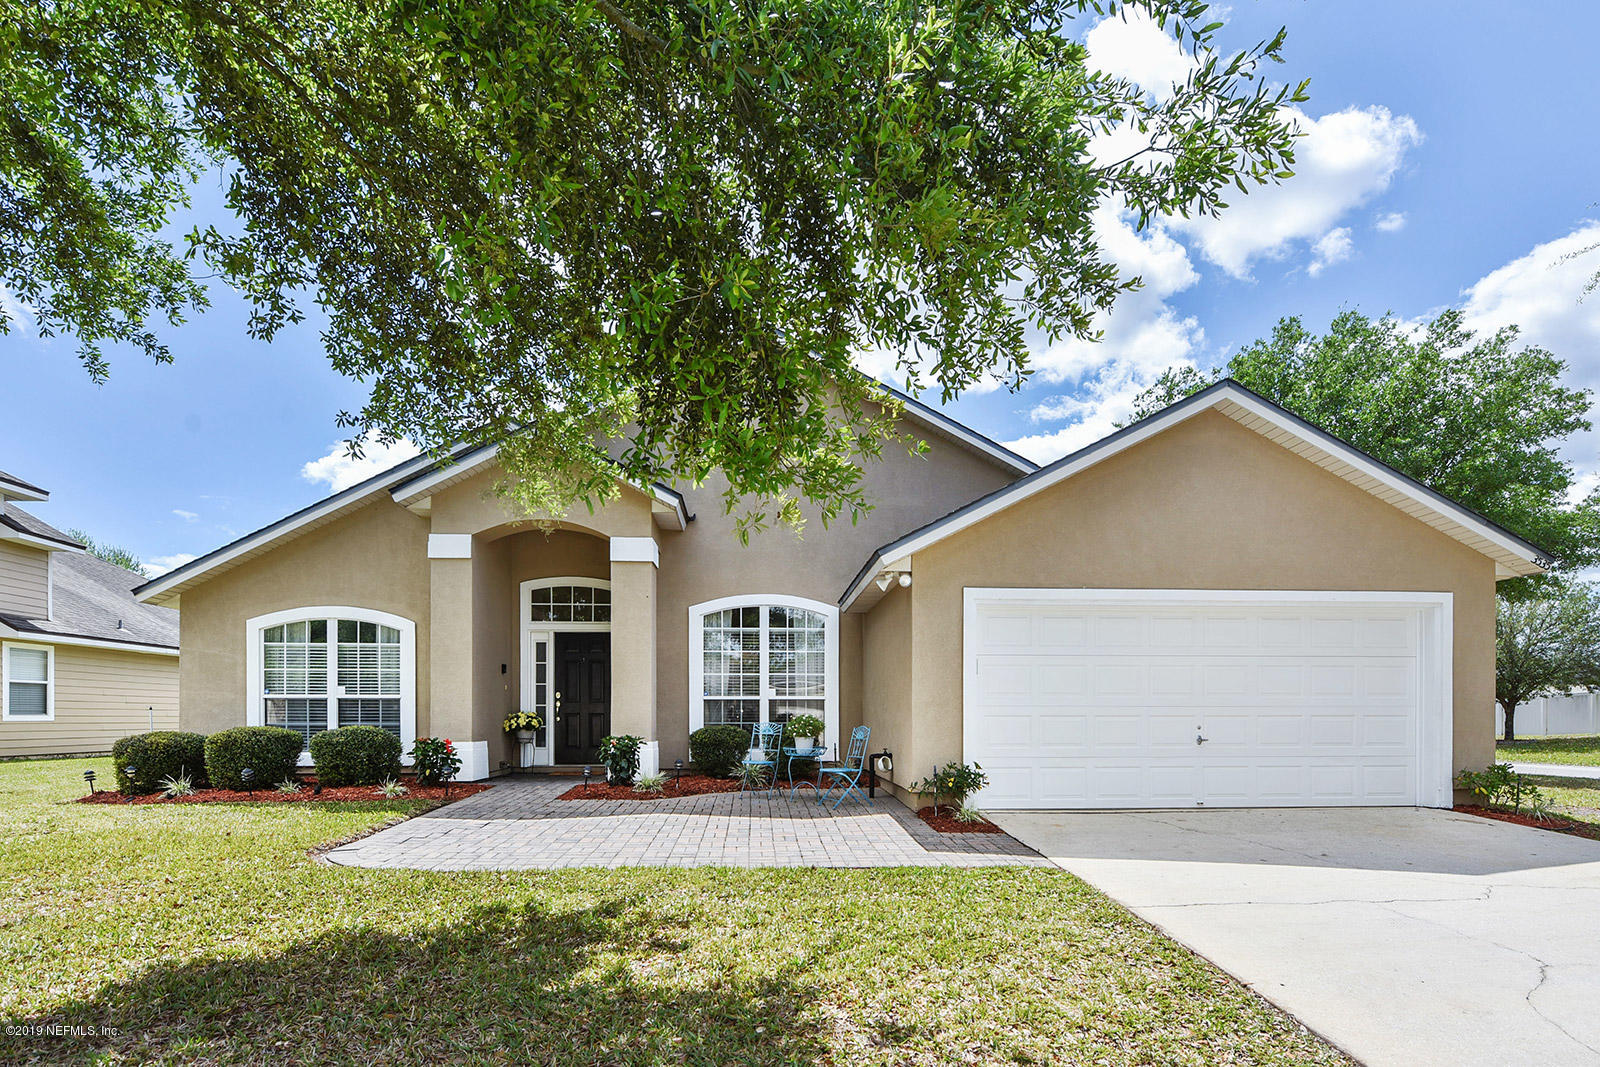 3535 SILVER BLUFF, ORANGE PARK, FLORIDA 32065, 4 Bedrooms Bedrooms, ,3 BathroomsBathrooms,Residential - single family,For sale,SILVER BLUFF,988378